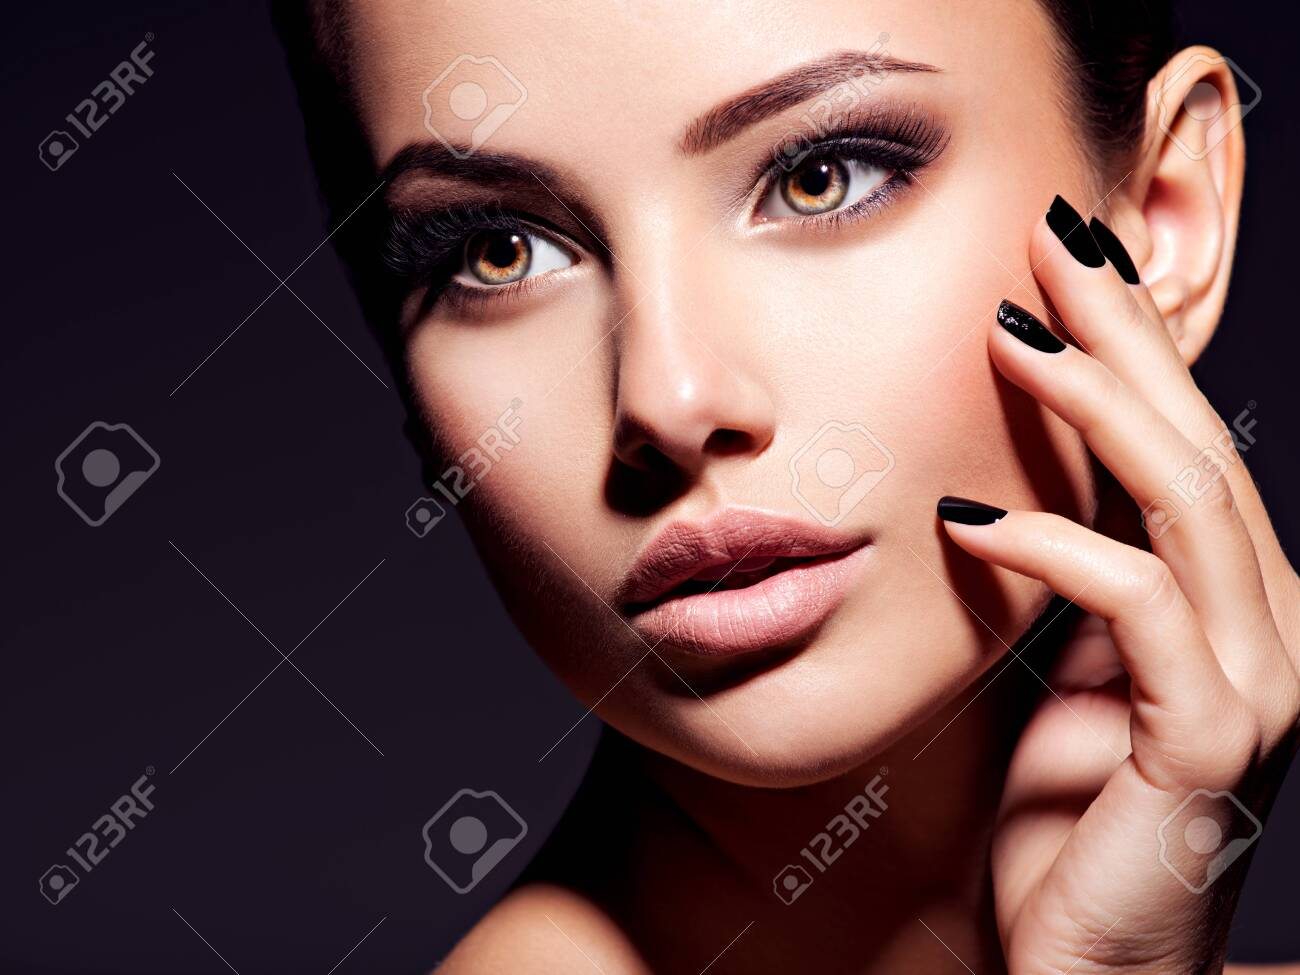 Face of a beautiful girl with fashion makeup and black nails posing at studio over dark background - 139477244